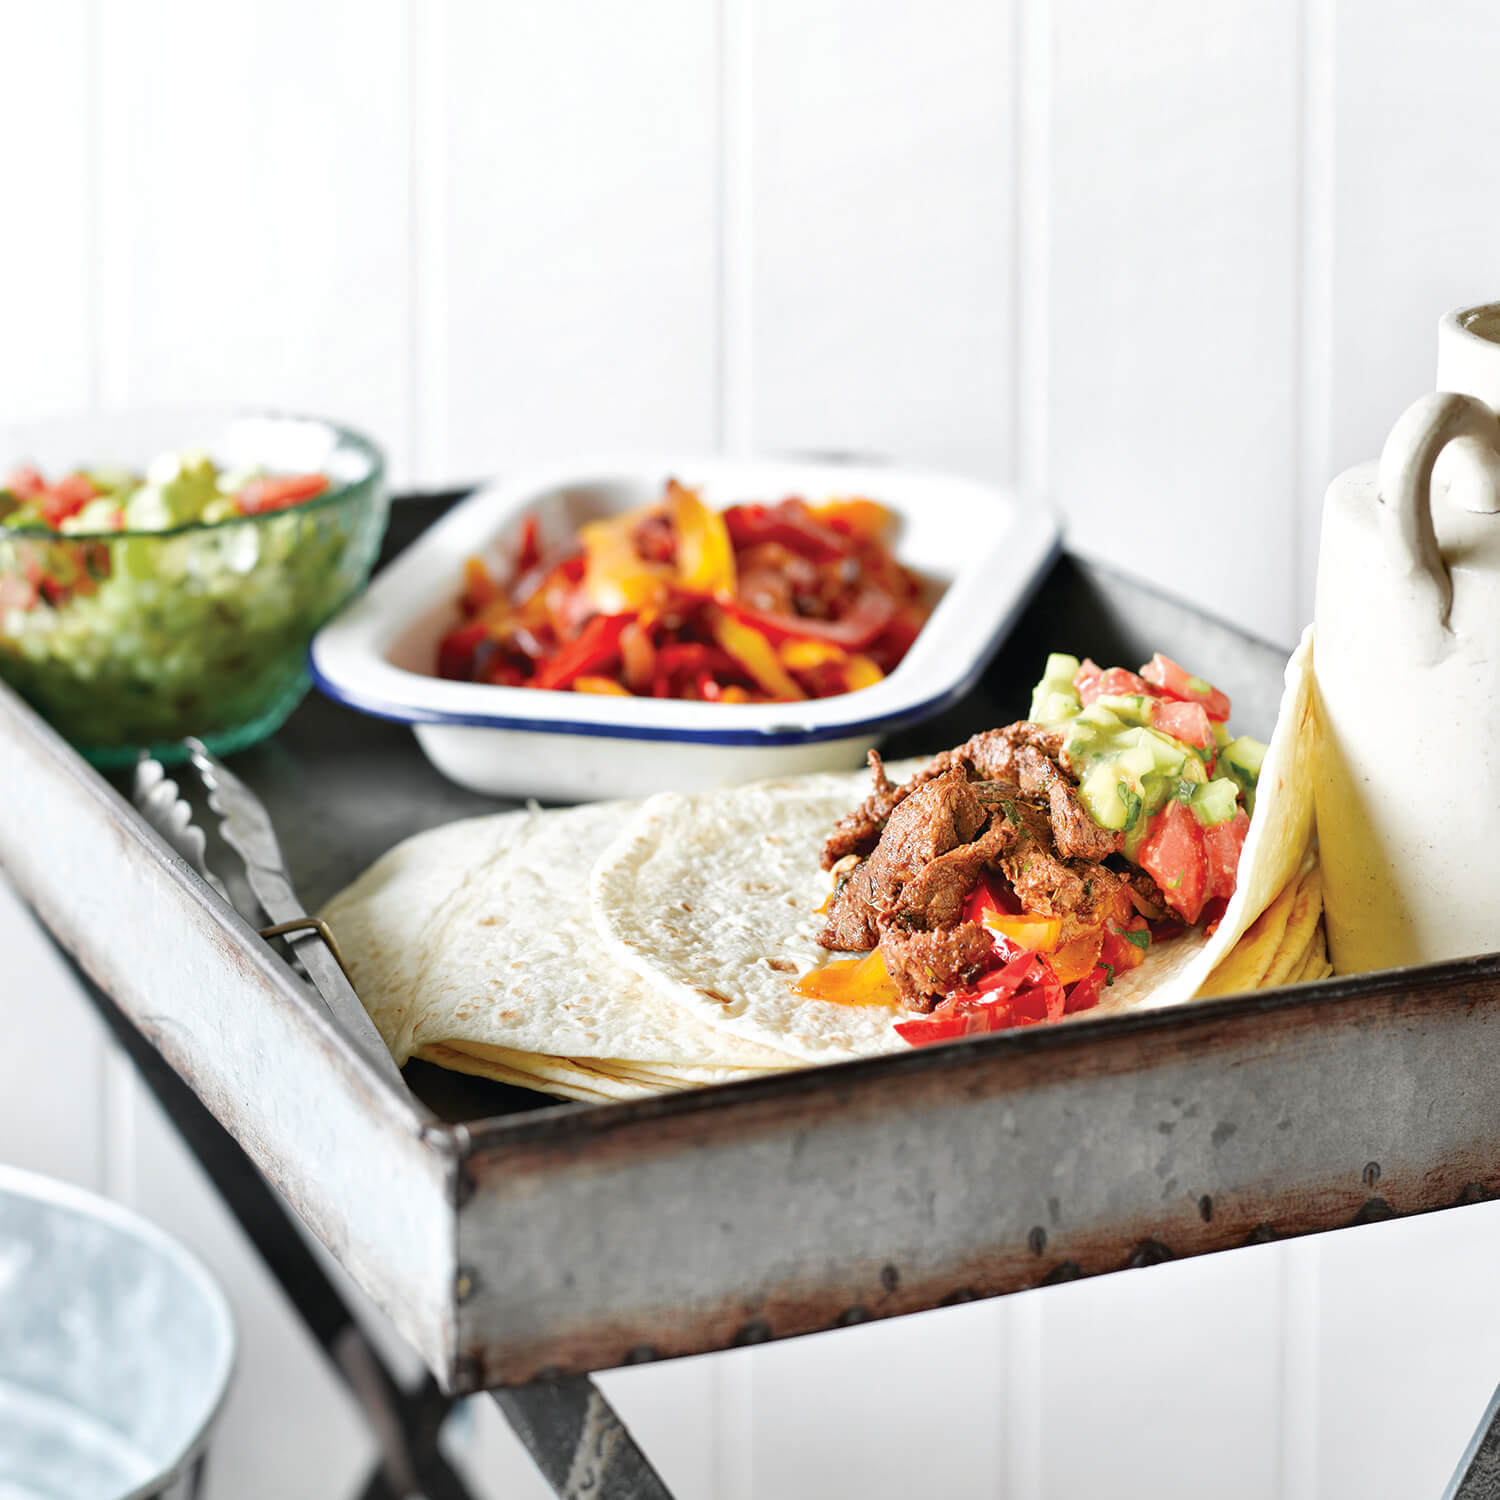 Barbecue Fajitas with Avocado Salsa